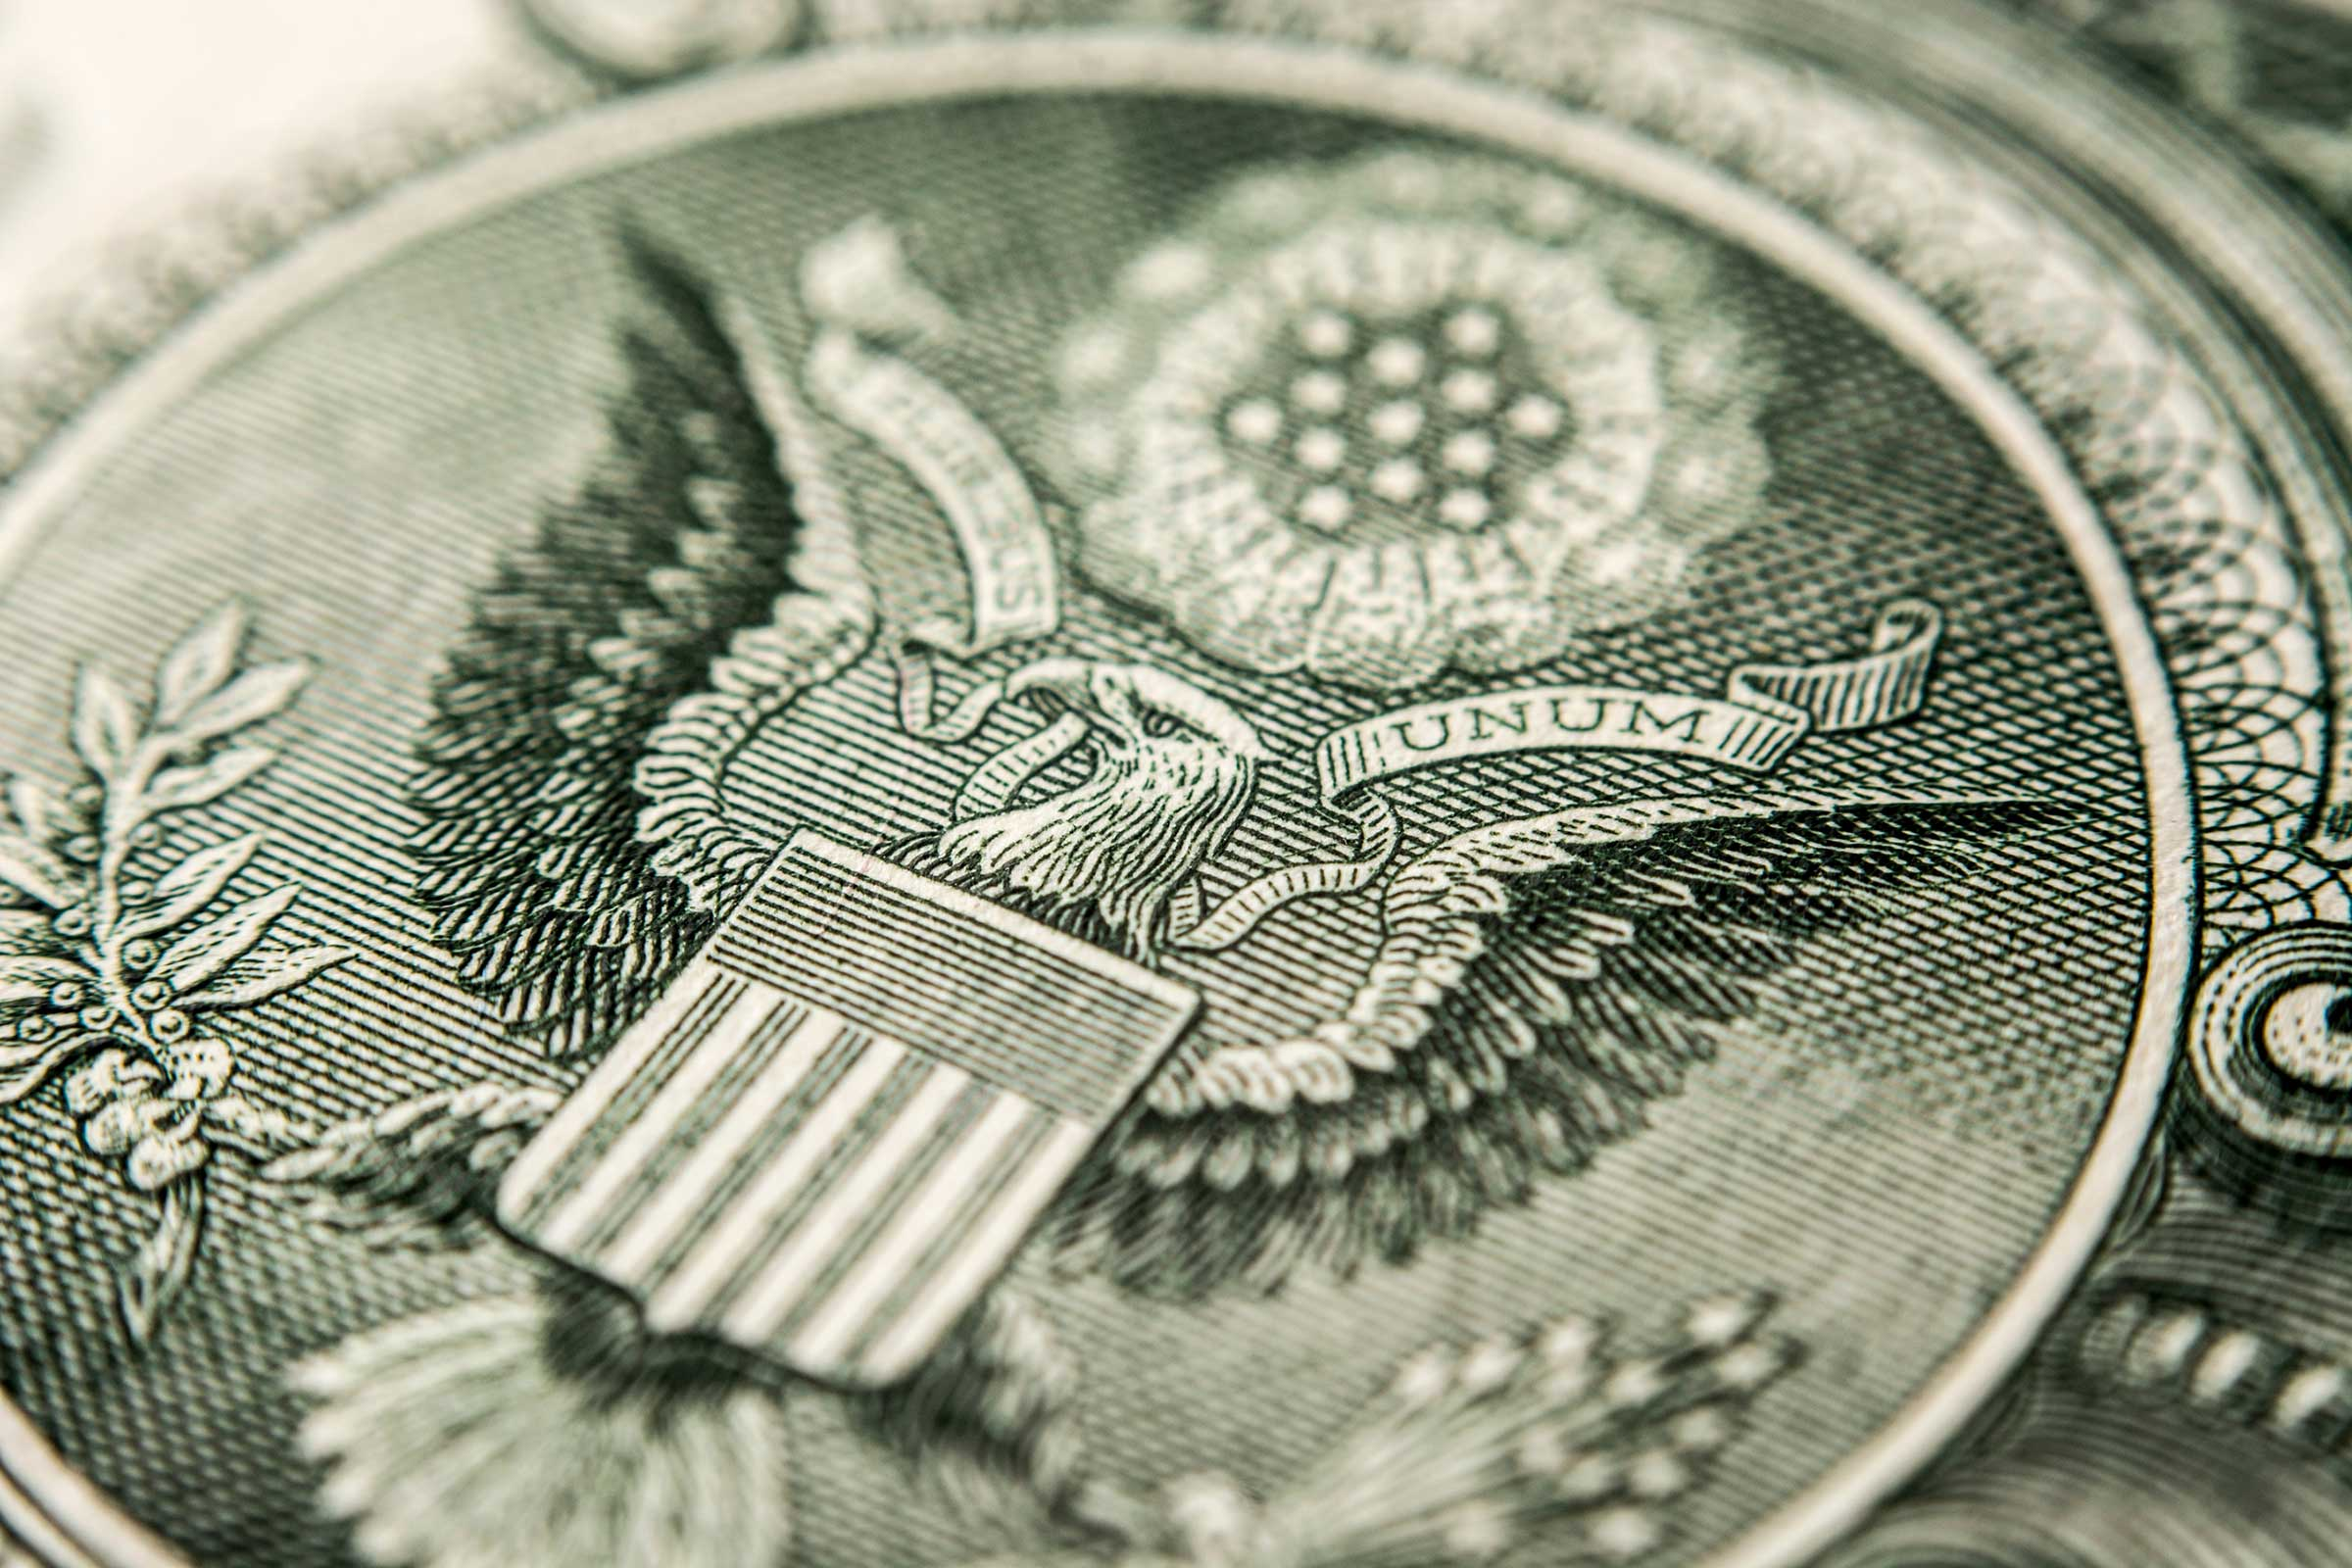 Dollar Bill Symbols: What They Mean | Reader's Digest